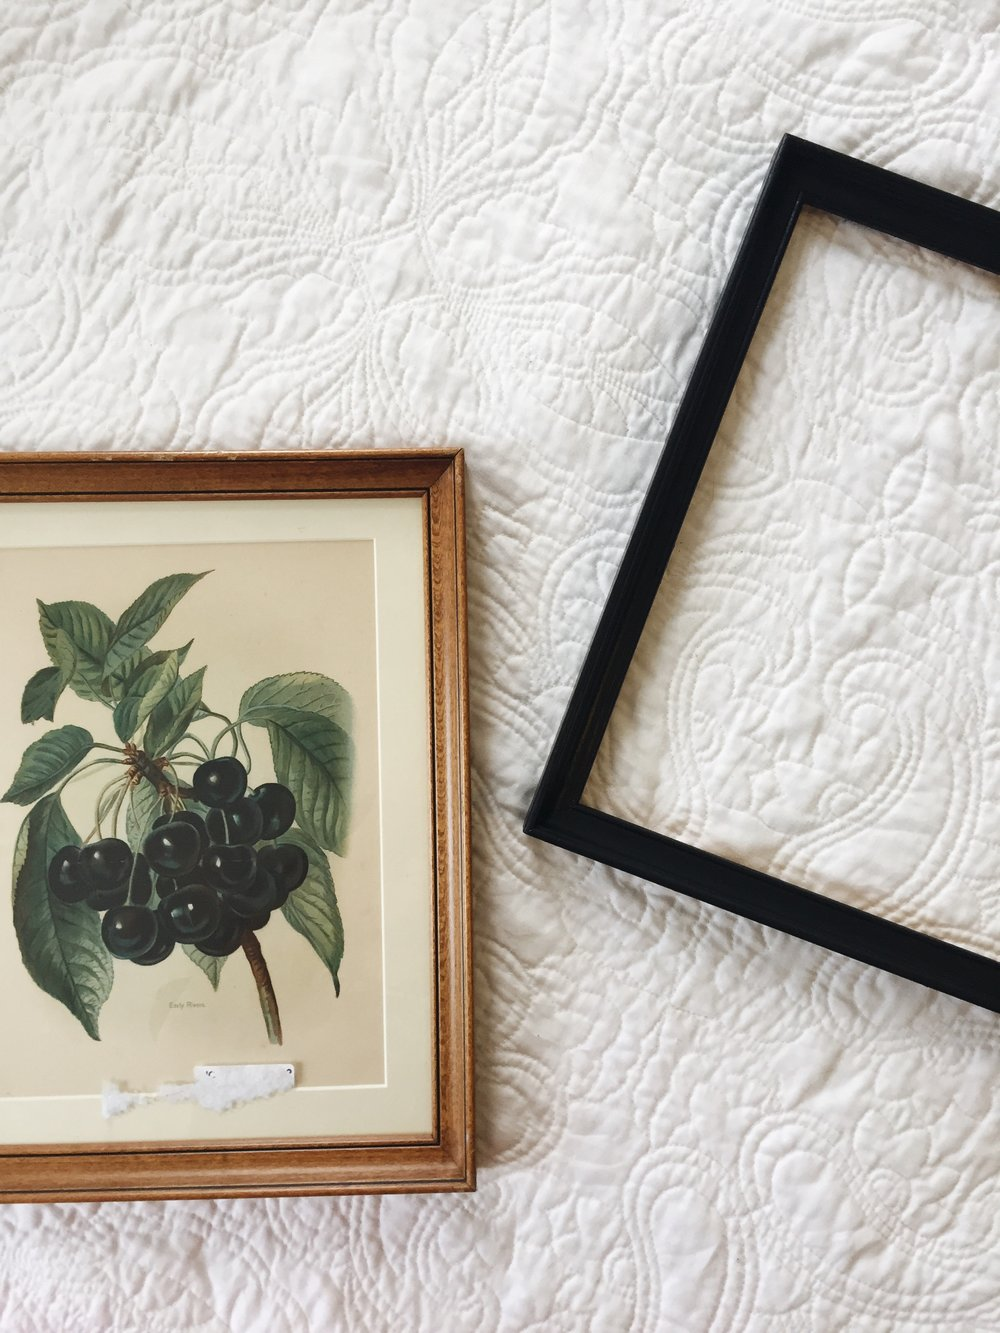 botanical_print_Charleston_south_carolina_exposed_fireplace_historic_home_bedroom_renovation_fireplace_mantle.JPG